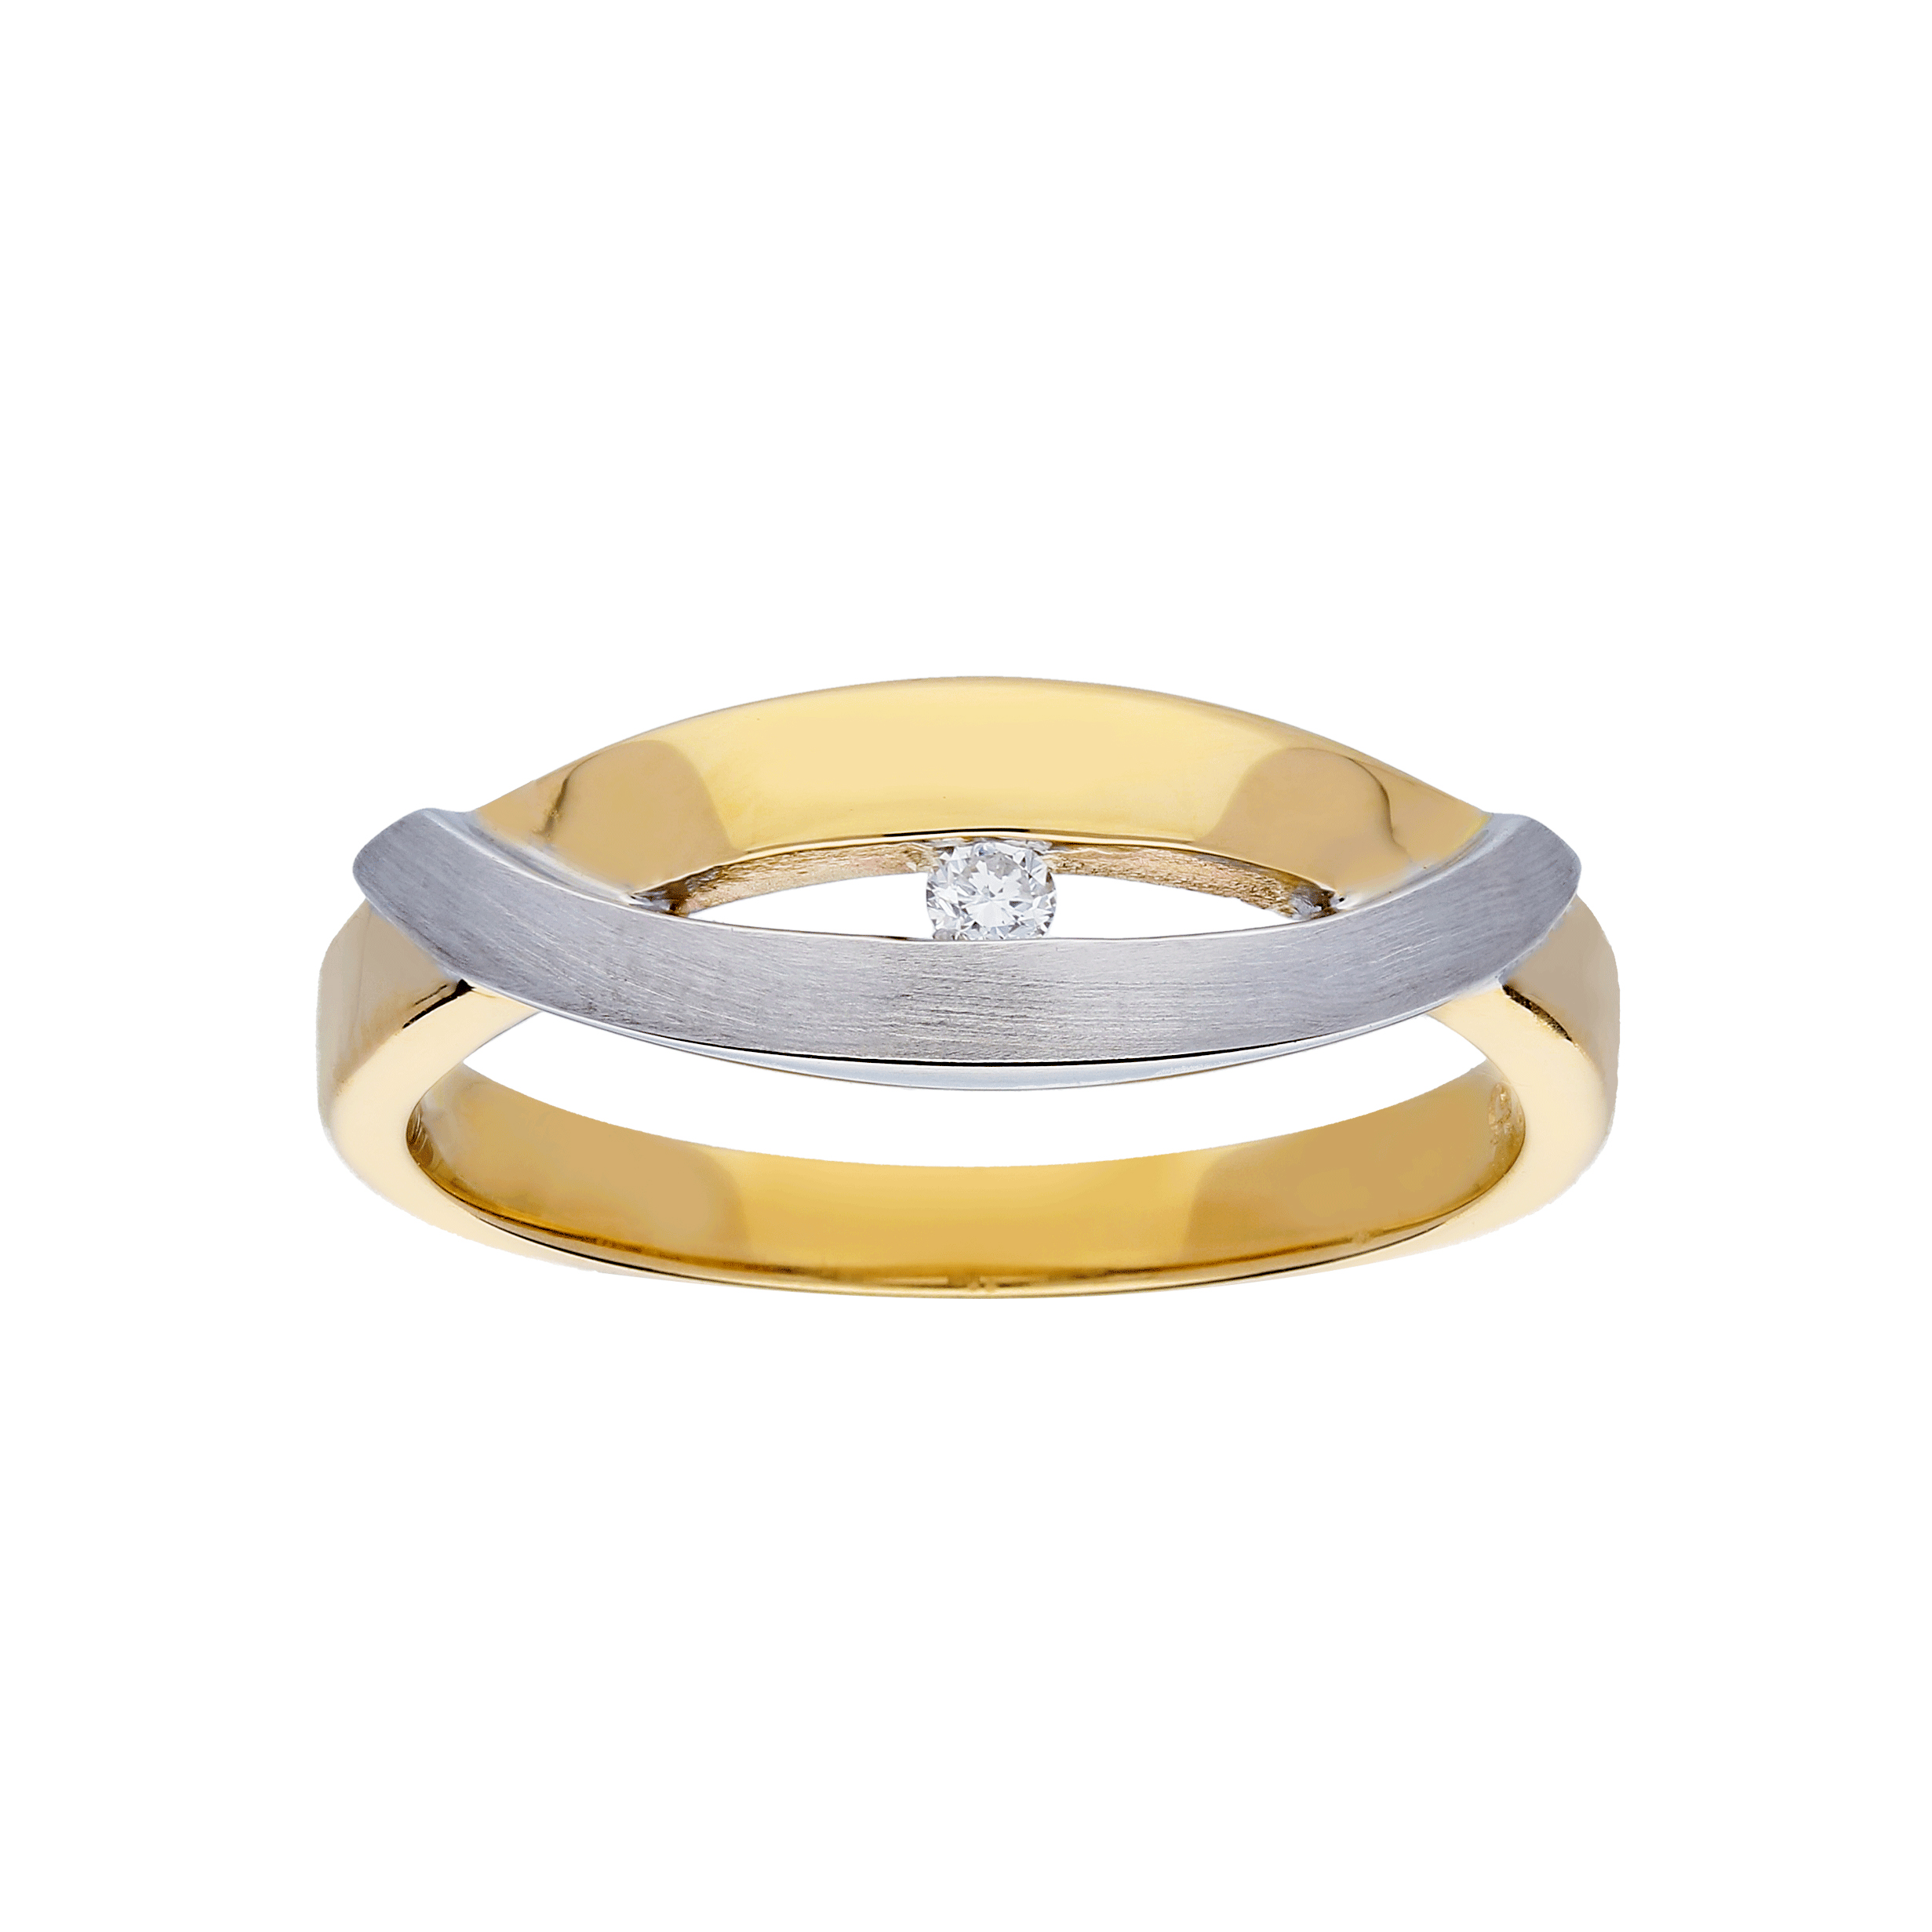 Glow Gouden Ring Bicolor Mat Glanzend Diamant 1 0.03ct G si 214.5202.54